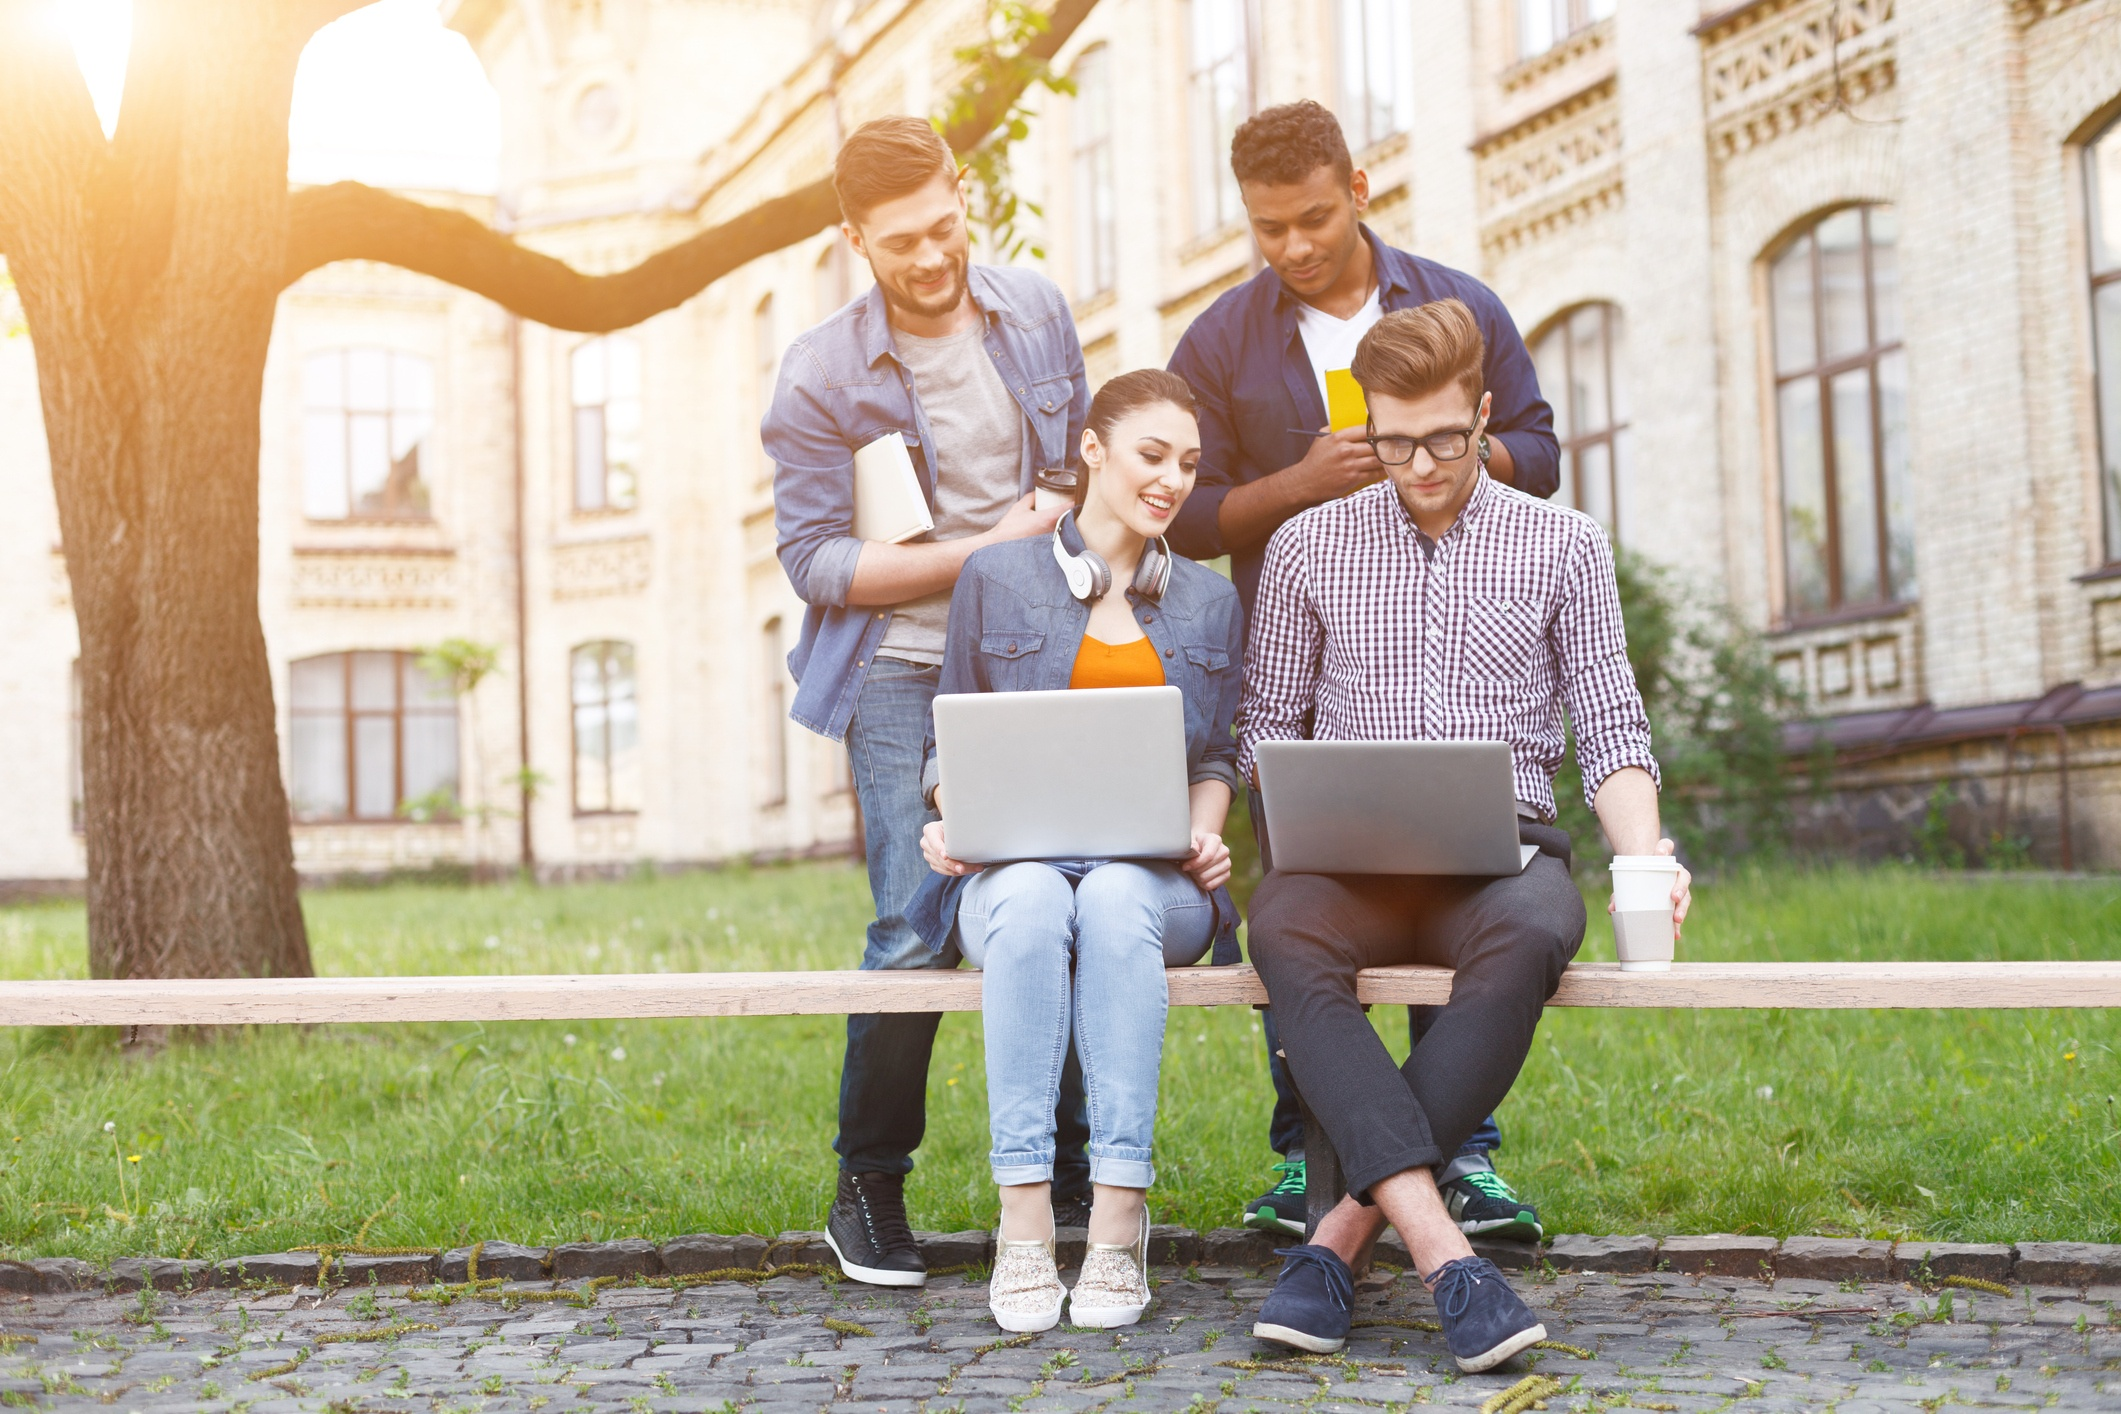 university-security-implications-of-byod-policies-1.jpg